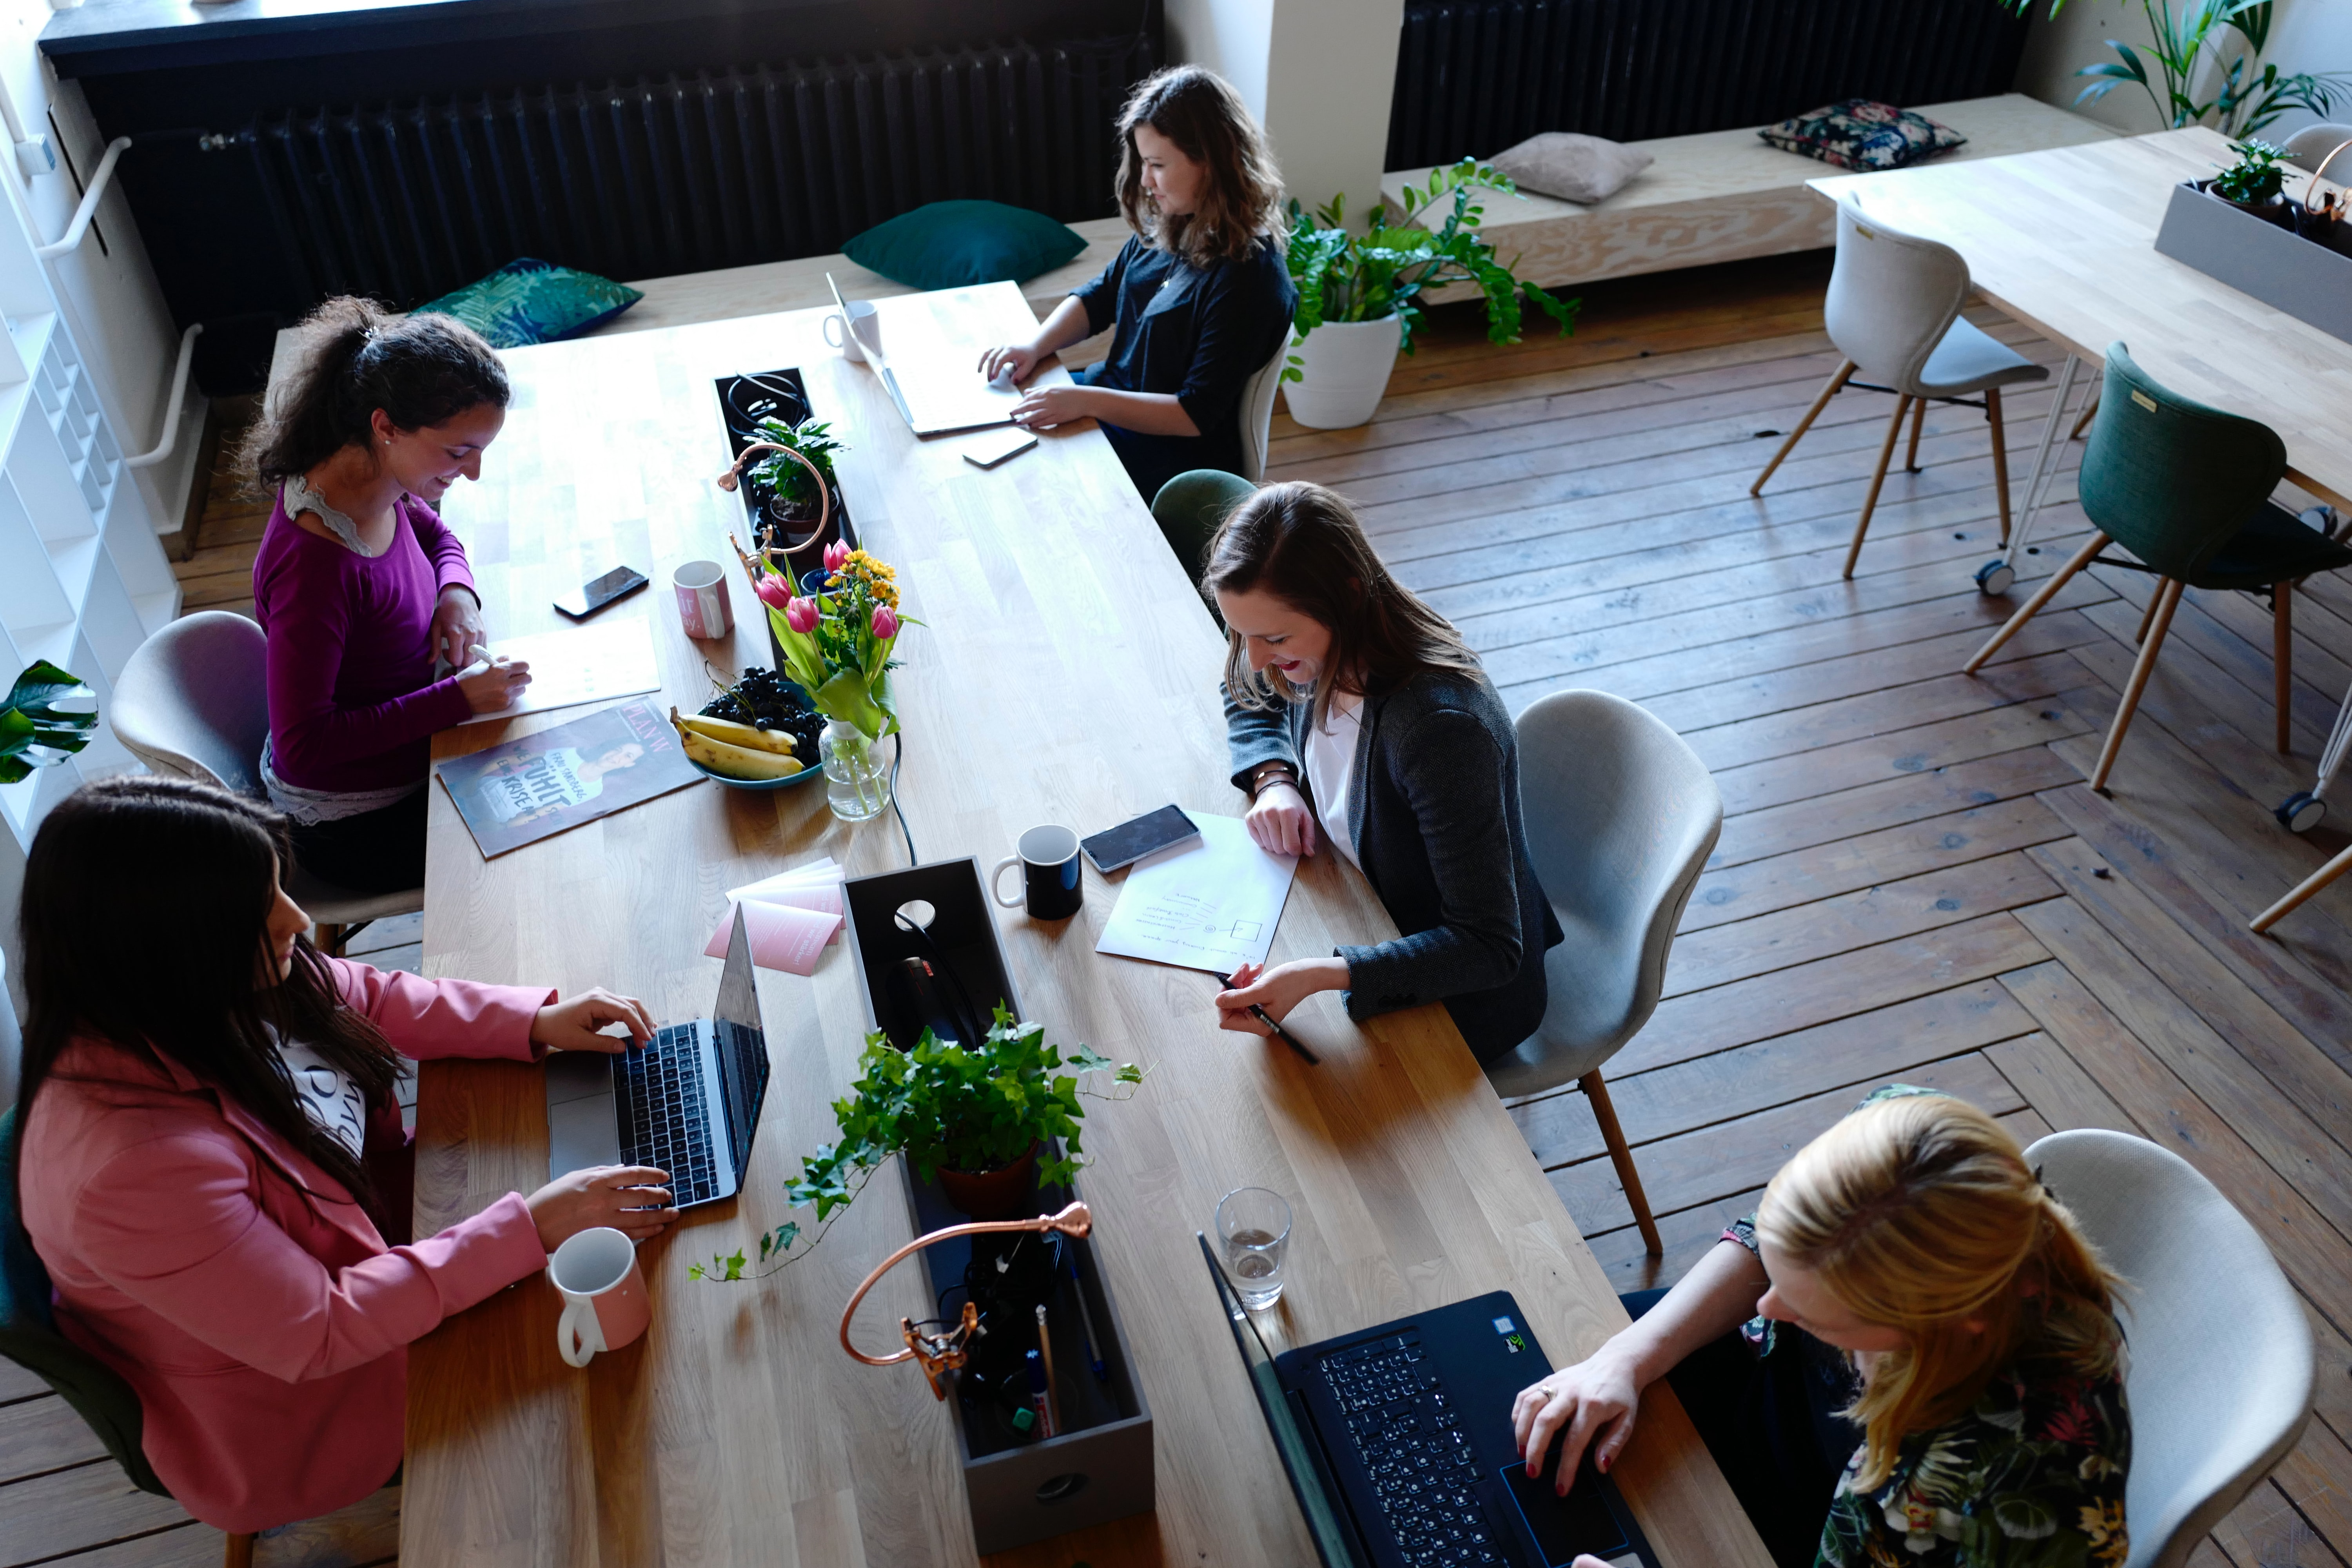 Why Coworking Spaces Are Becoming the Norm